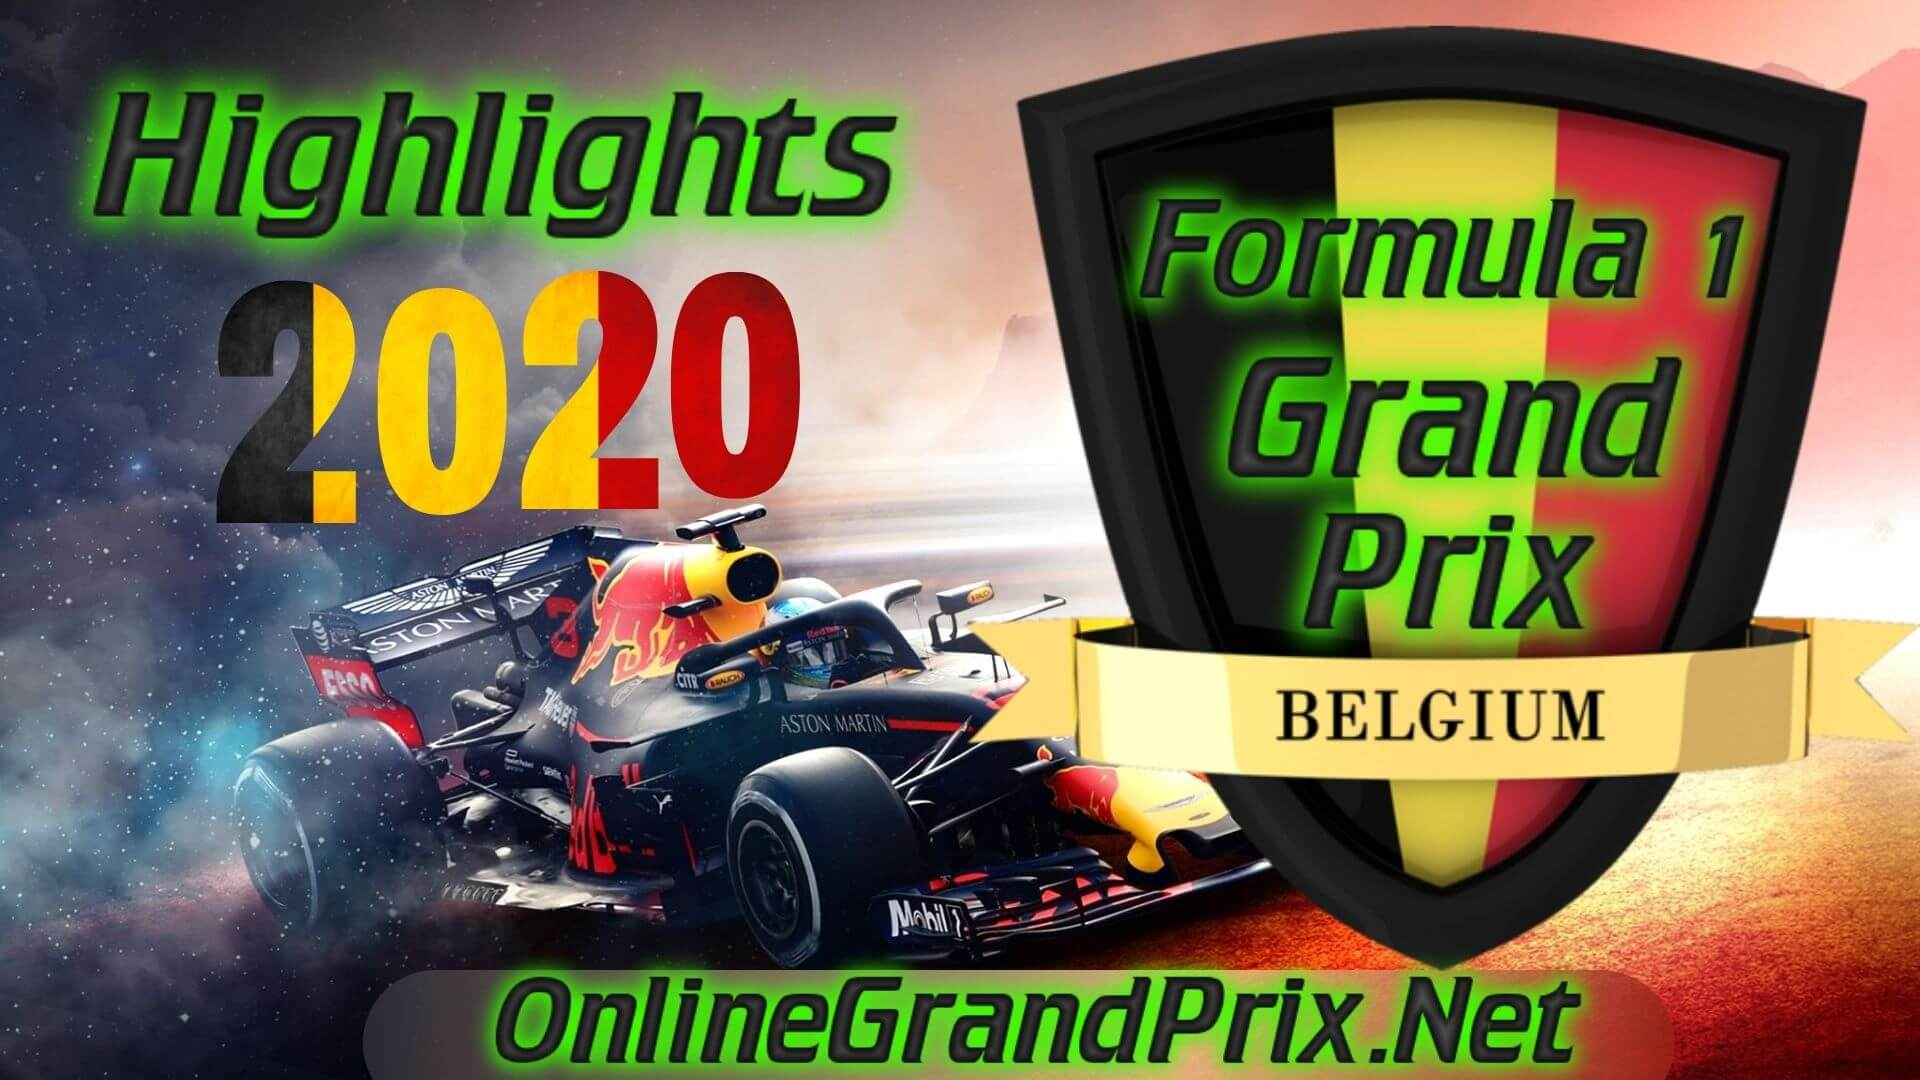 Belgium GP F1 Highlights 2020